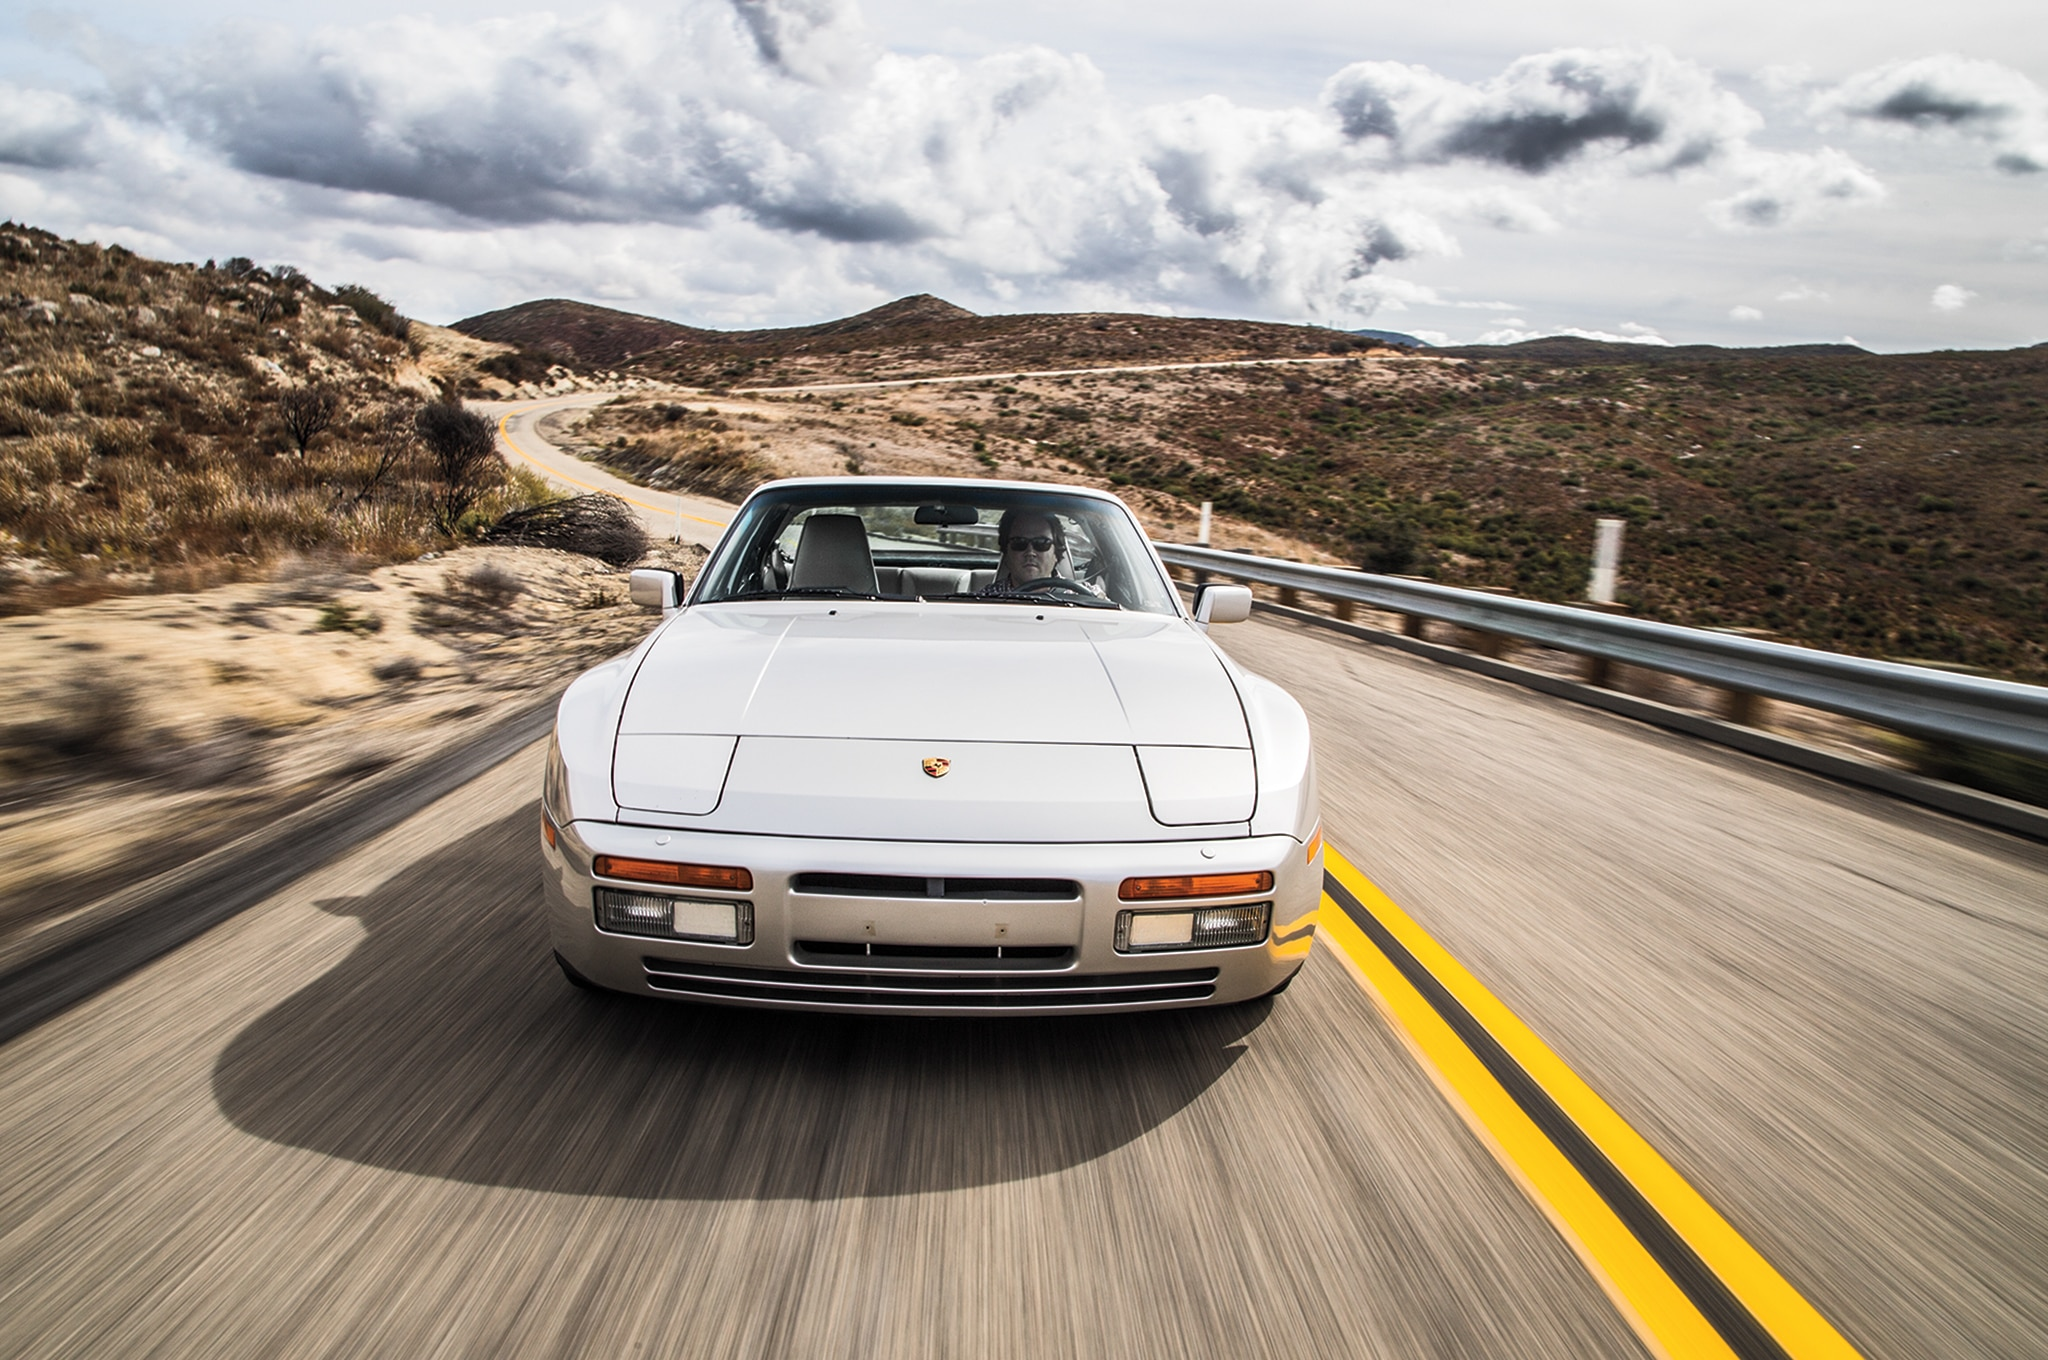 1989 Porsche 944 S2 Front View In Motion